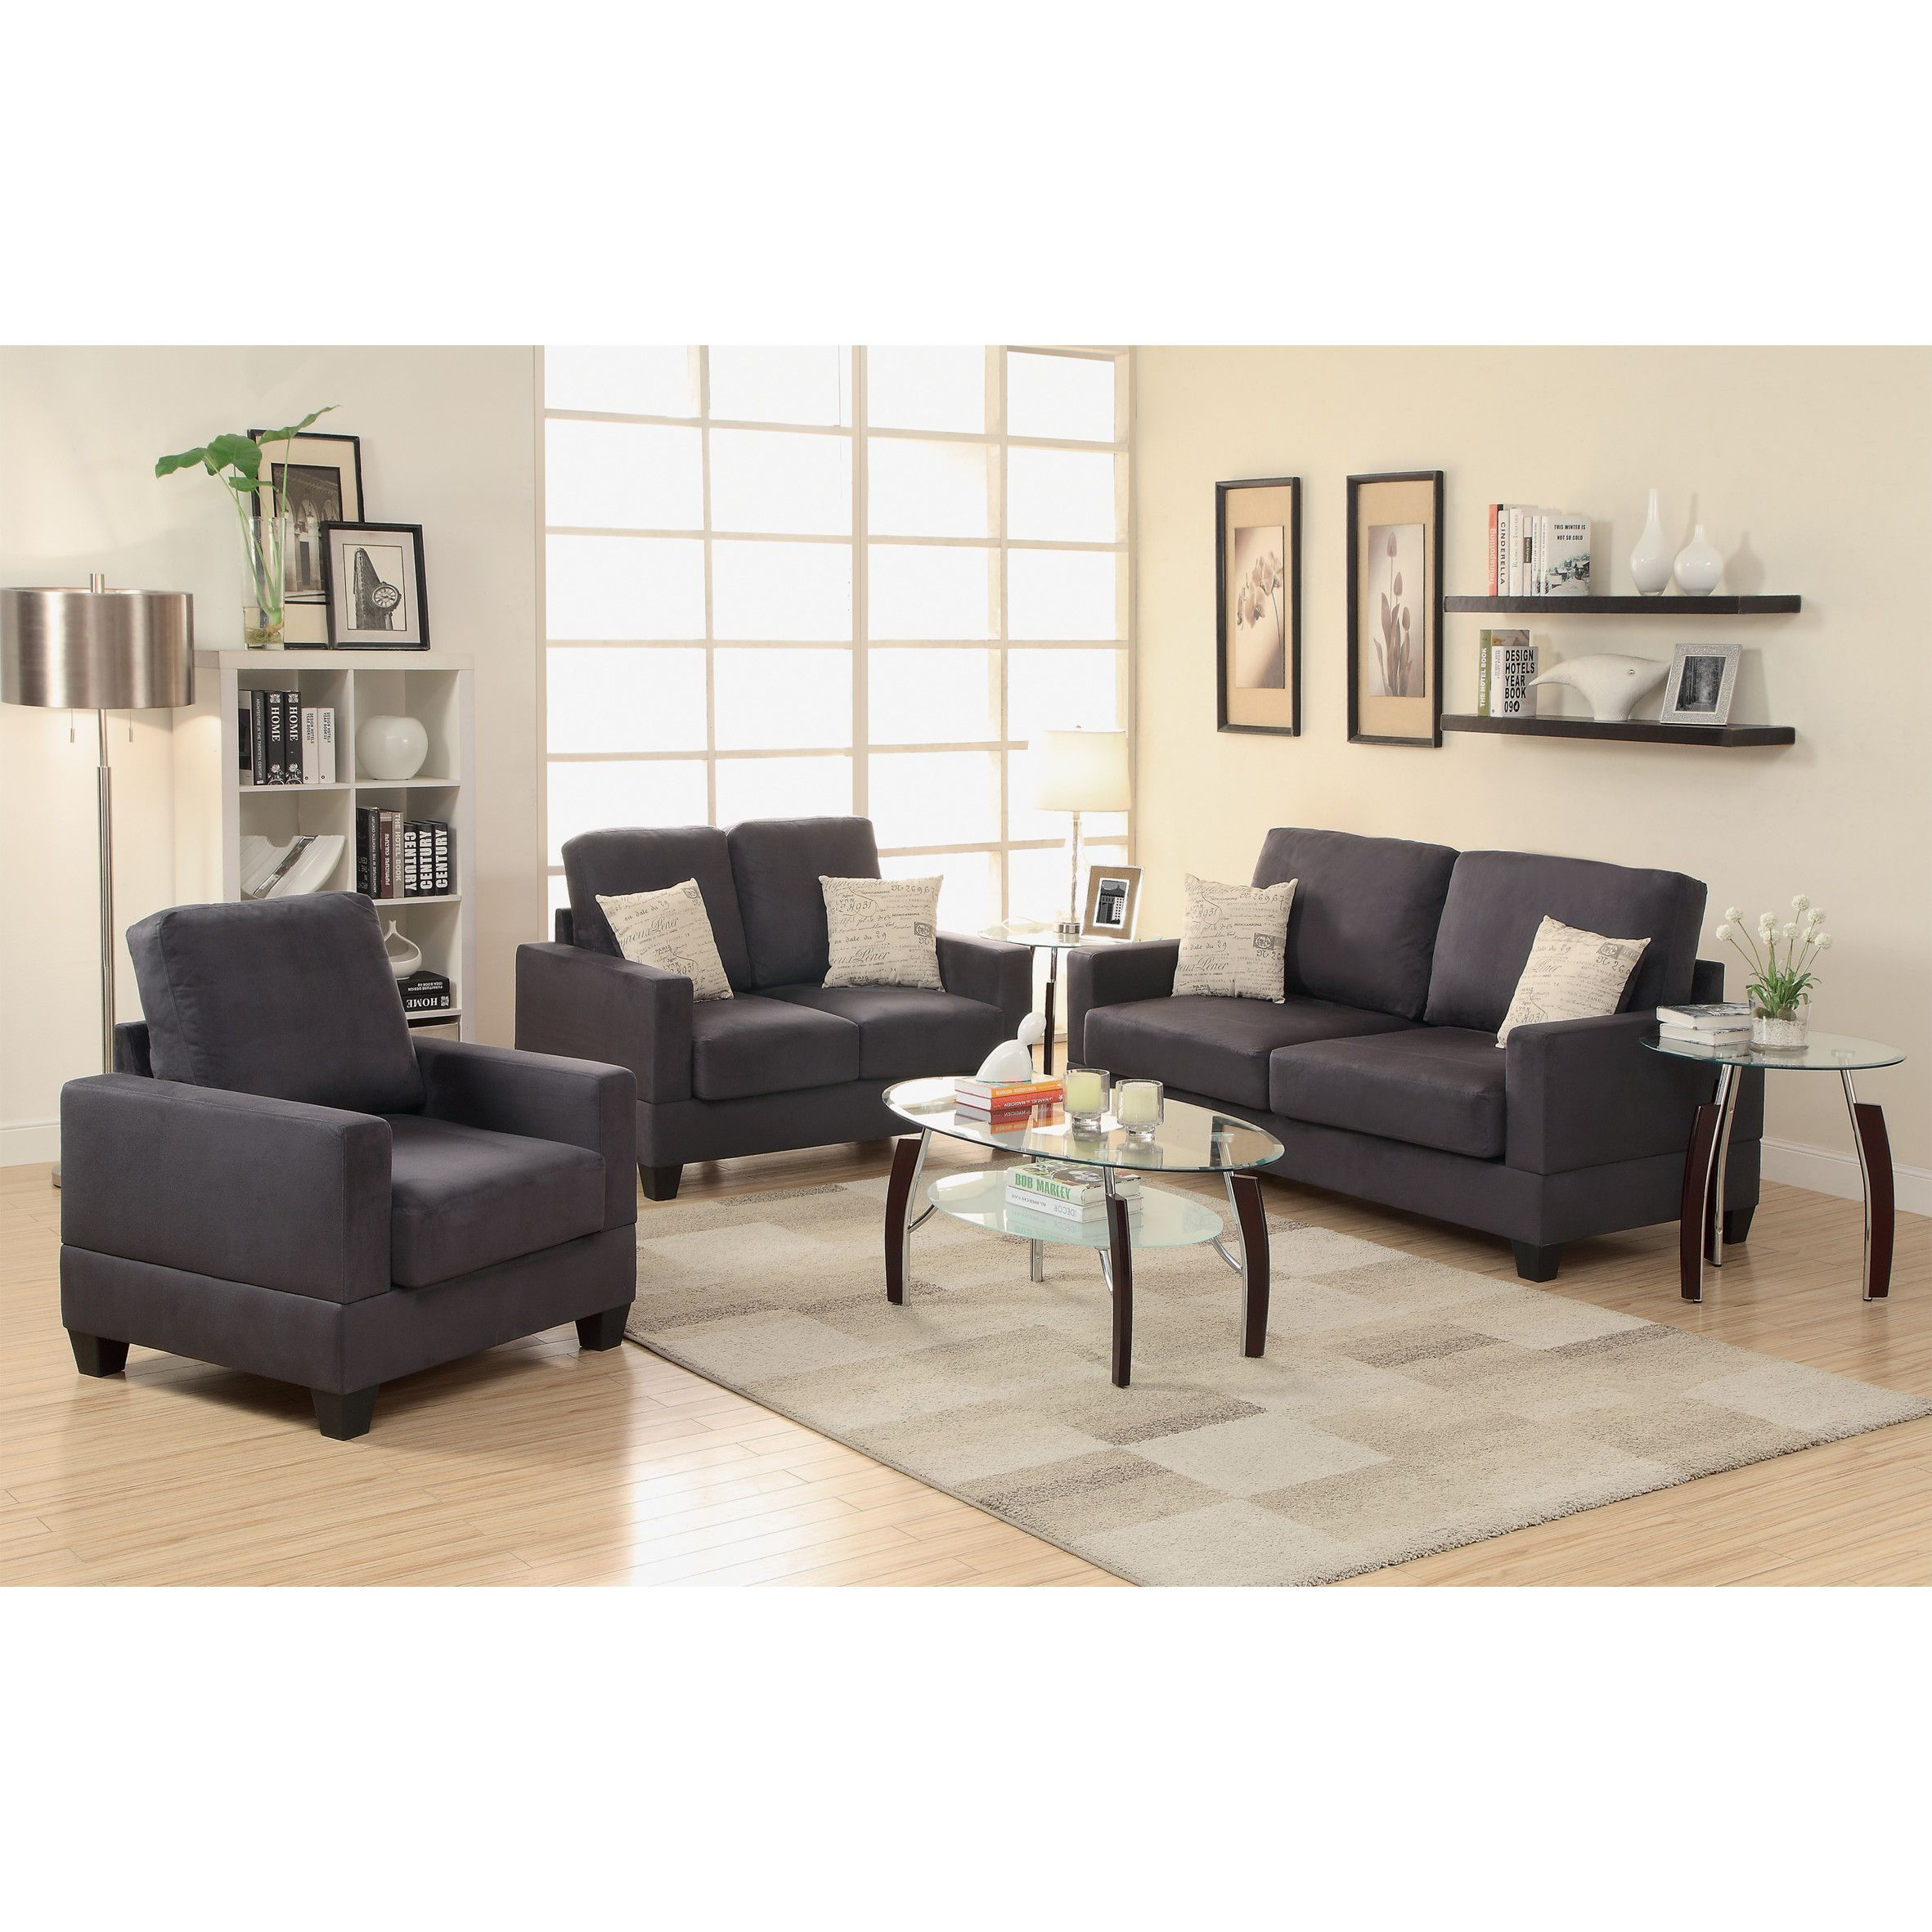 Bobkona madison piece sofa and loveseat with chair set